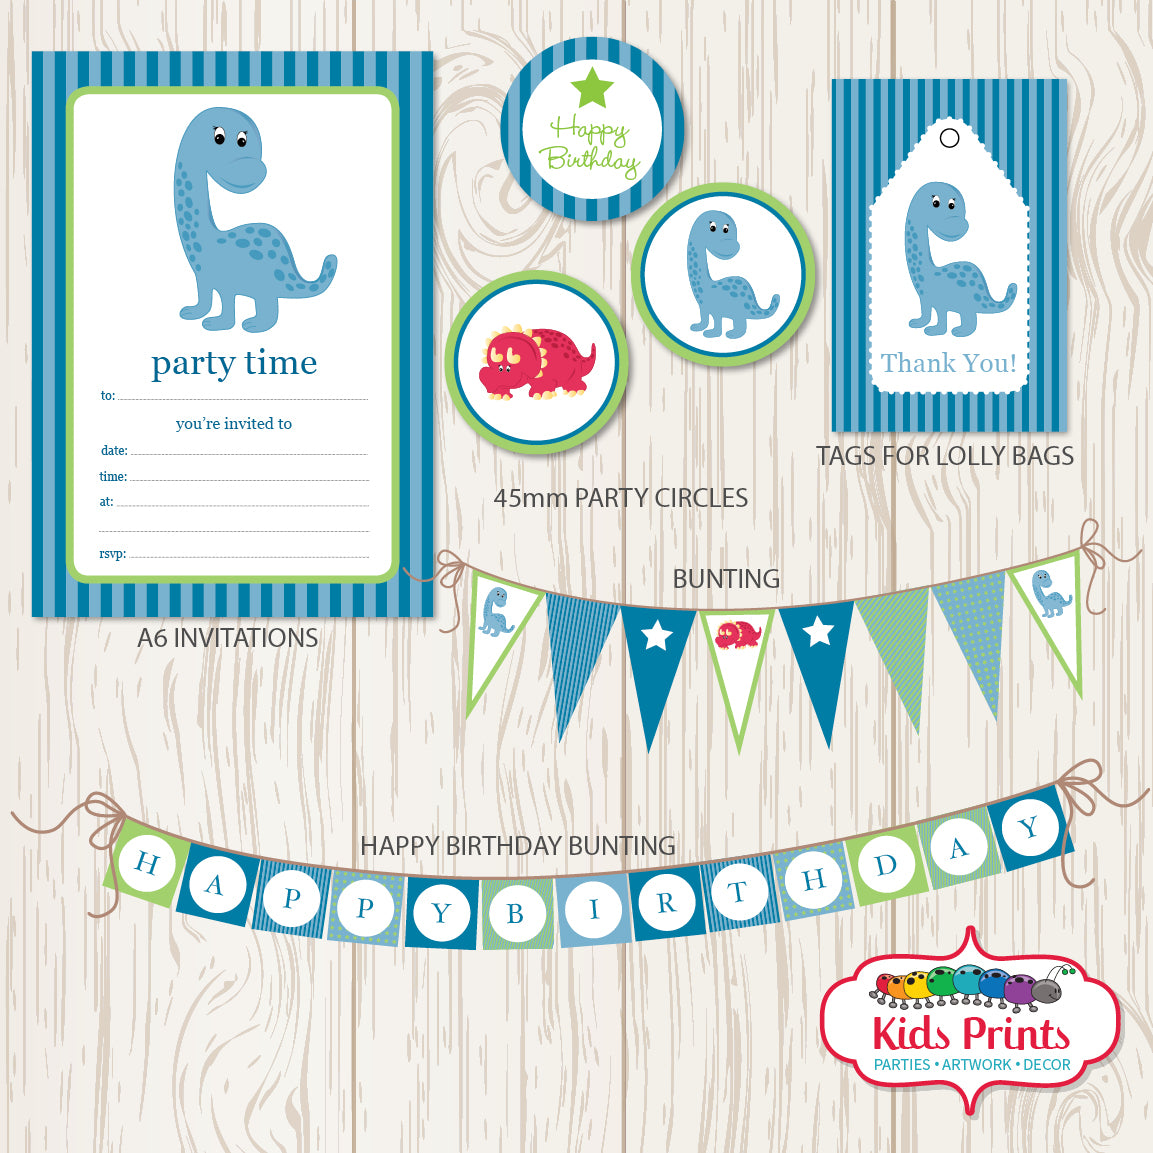 Blue Dinosaur Printable Party Stationery - Kids Prints Online - kids wall art printable - nursery art printable - printable invitations - digital invitations - kids wall art - kids prints